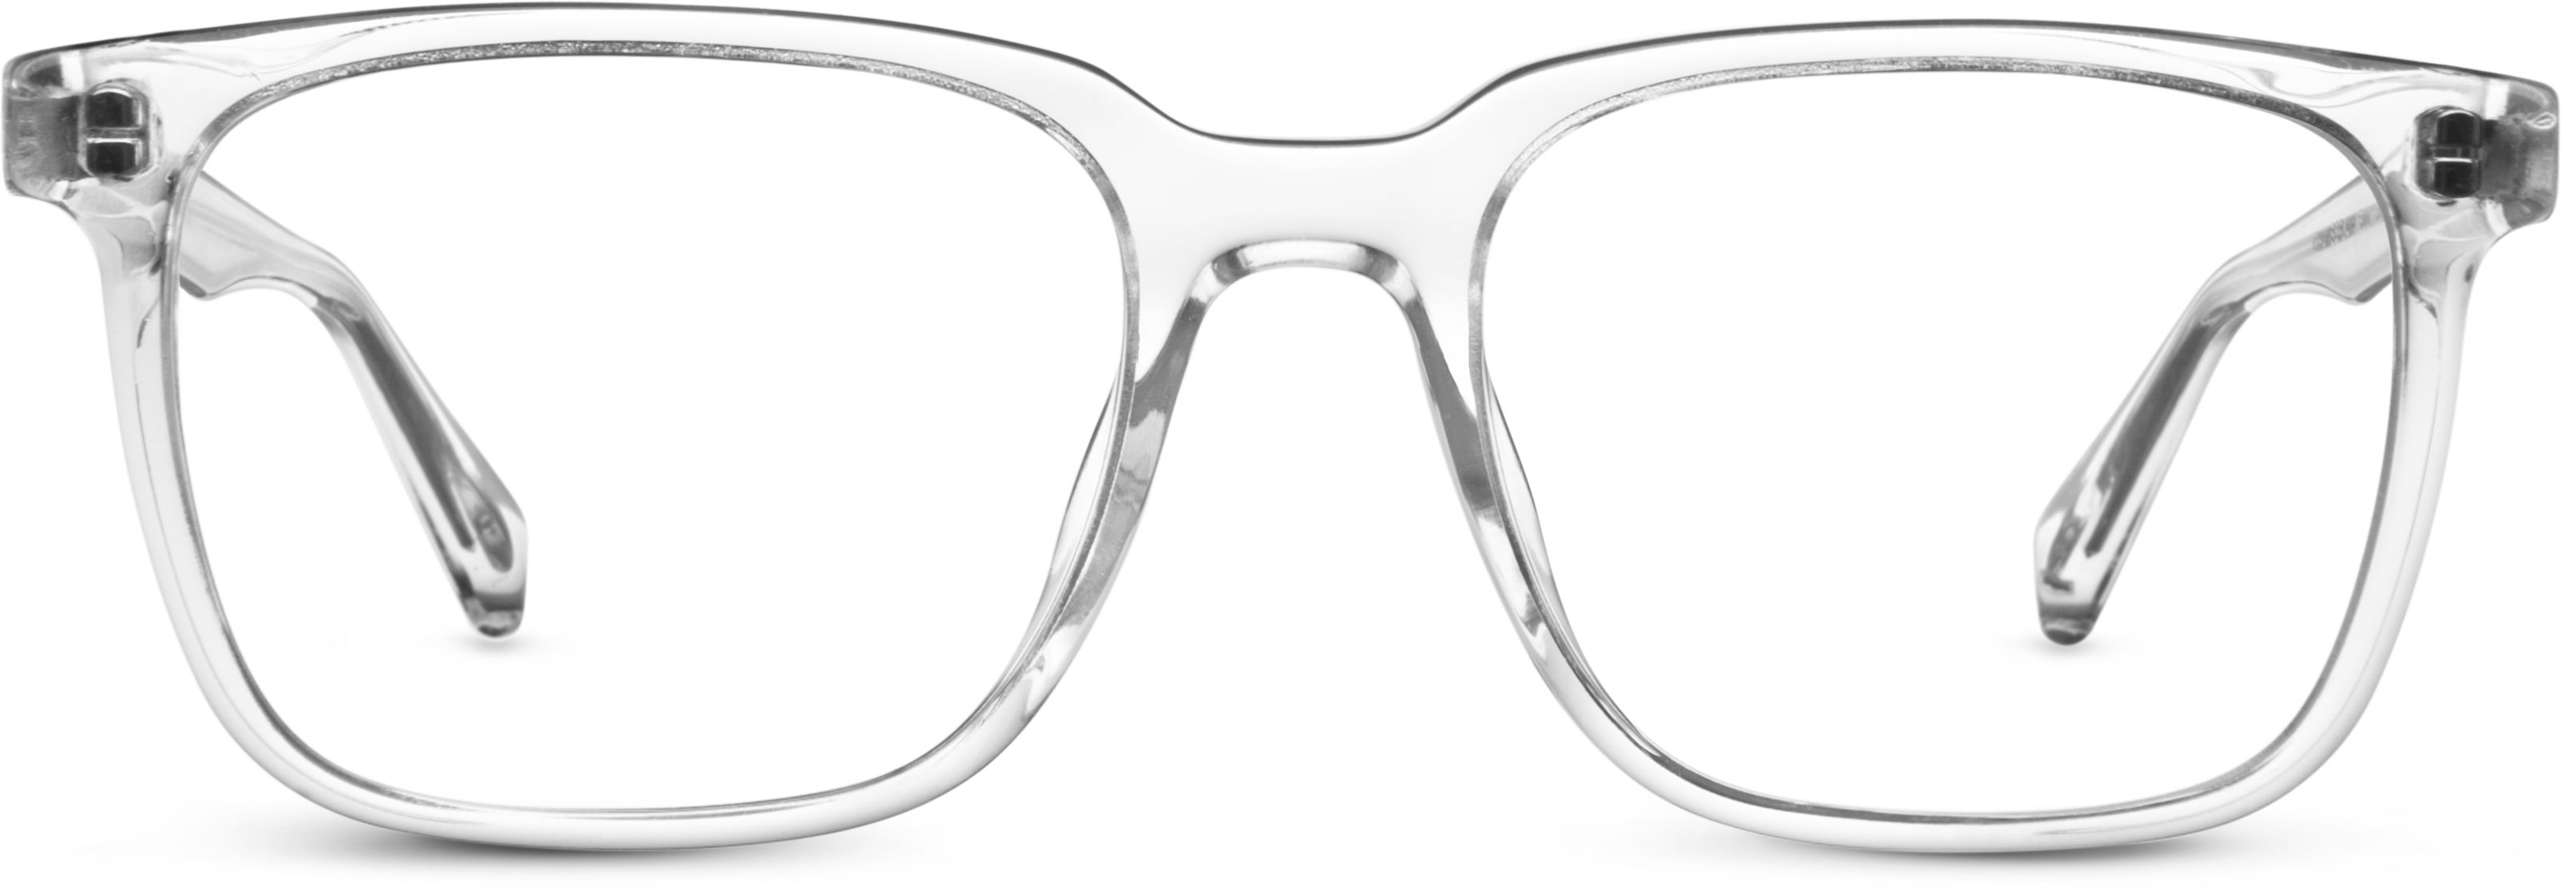 Chamberlain Eyeglasses in Crystal for Women | Warby Parker